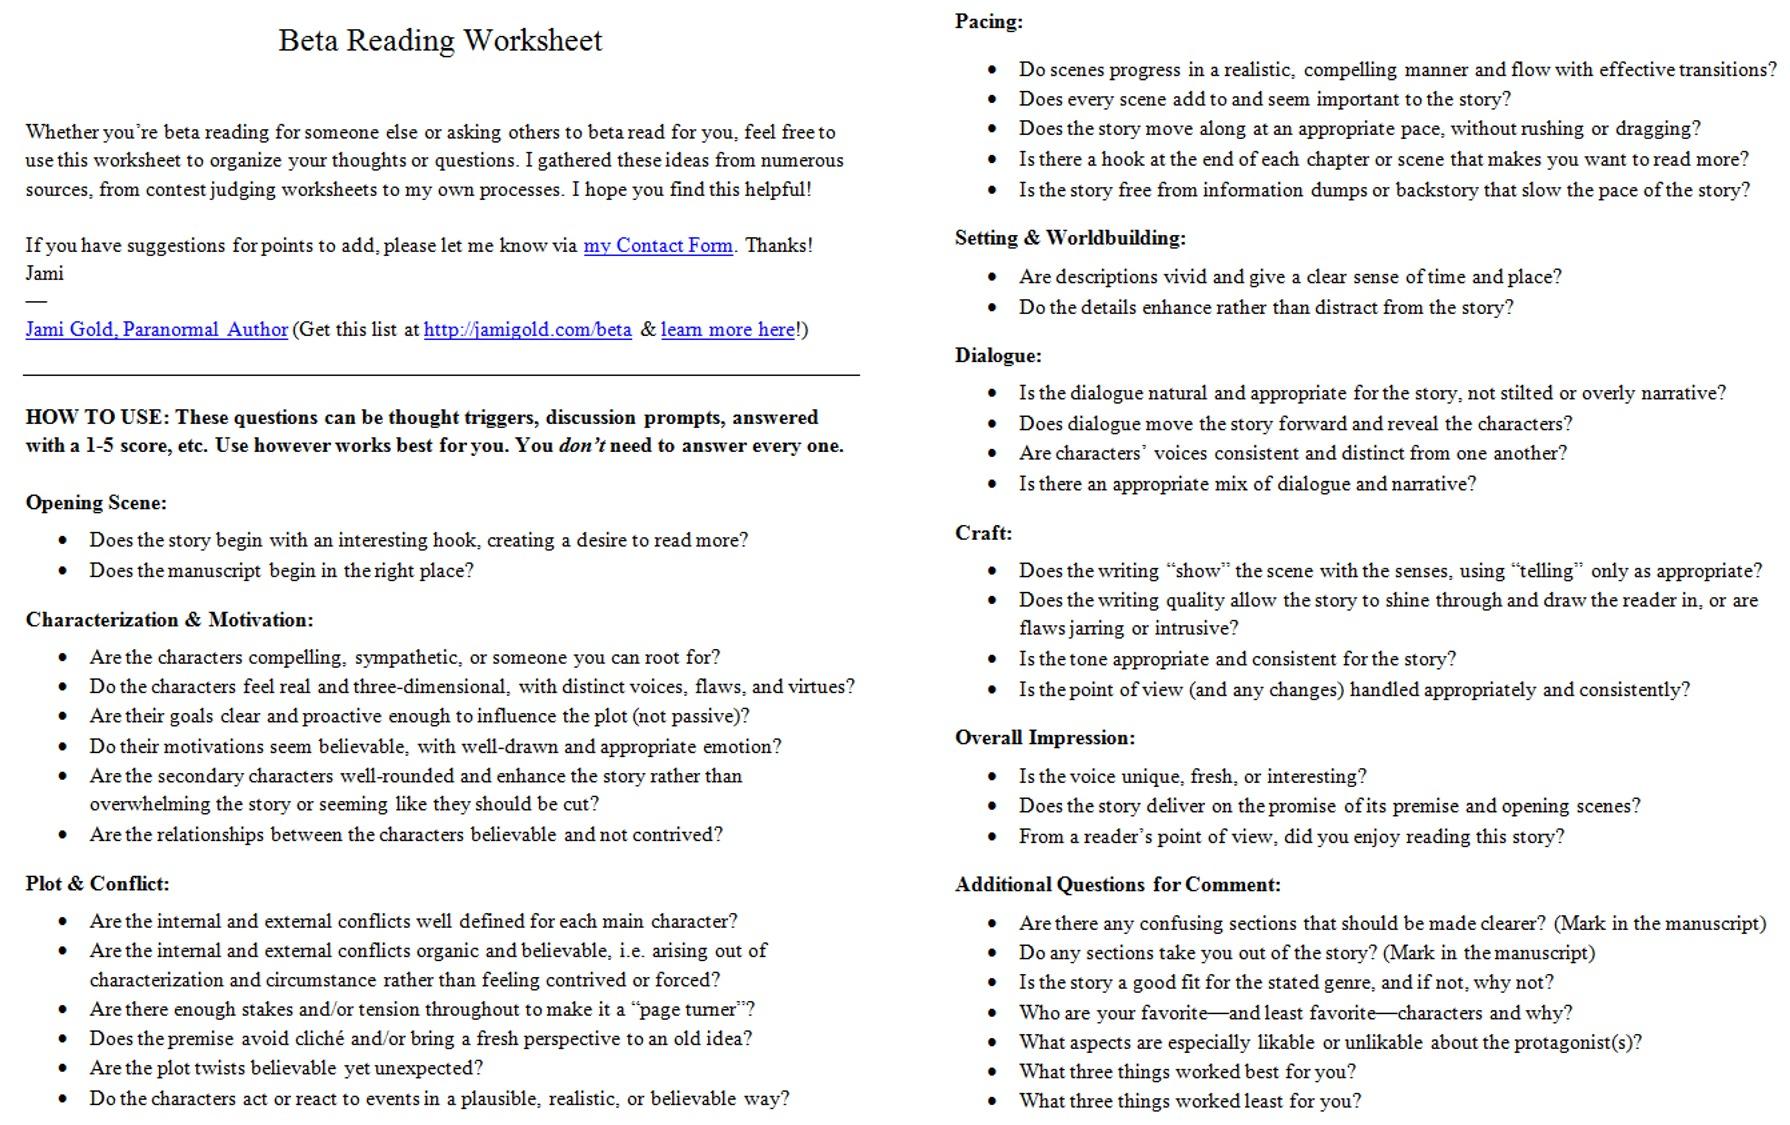 Weirdmailus  Pretty Worksheets For Writers  Jami Gold Paranormal Author With Outstanding Screen Shot Of The Twopage Beta Reading Worksheet With Comely Un Prefix Worksheets Also Perimeter Of Square And Rectangle Worksheet In Addition Comprehension Worksheets Grade  And Year  Maths Worksheets As Well As Worksheet On Drawing Conclusions Additionally Year  English Worksheets Free From Jamigoldcom With Weirdmailus  Outstanding Worksheets For Writers  Jami Gold Paranormal Author With Comely Screen Shot Of The Twopage Beta Reading Worksheet And Pretty Un Prefix Worksheets Also Perimeter Of Square And Rectangle Worksheet In Addition Comprehension Worksheets Grade  From Jamigoldcom